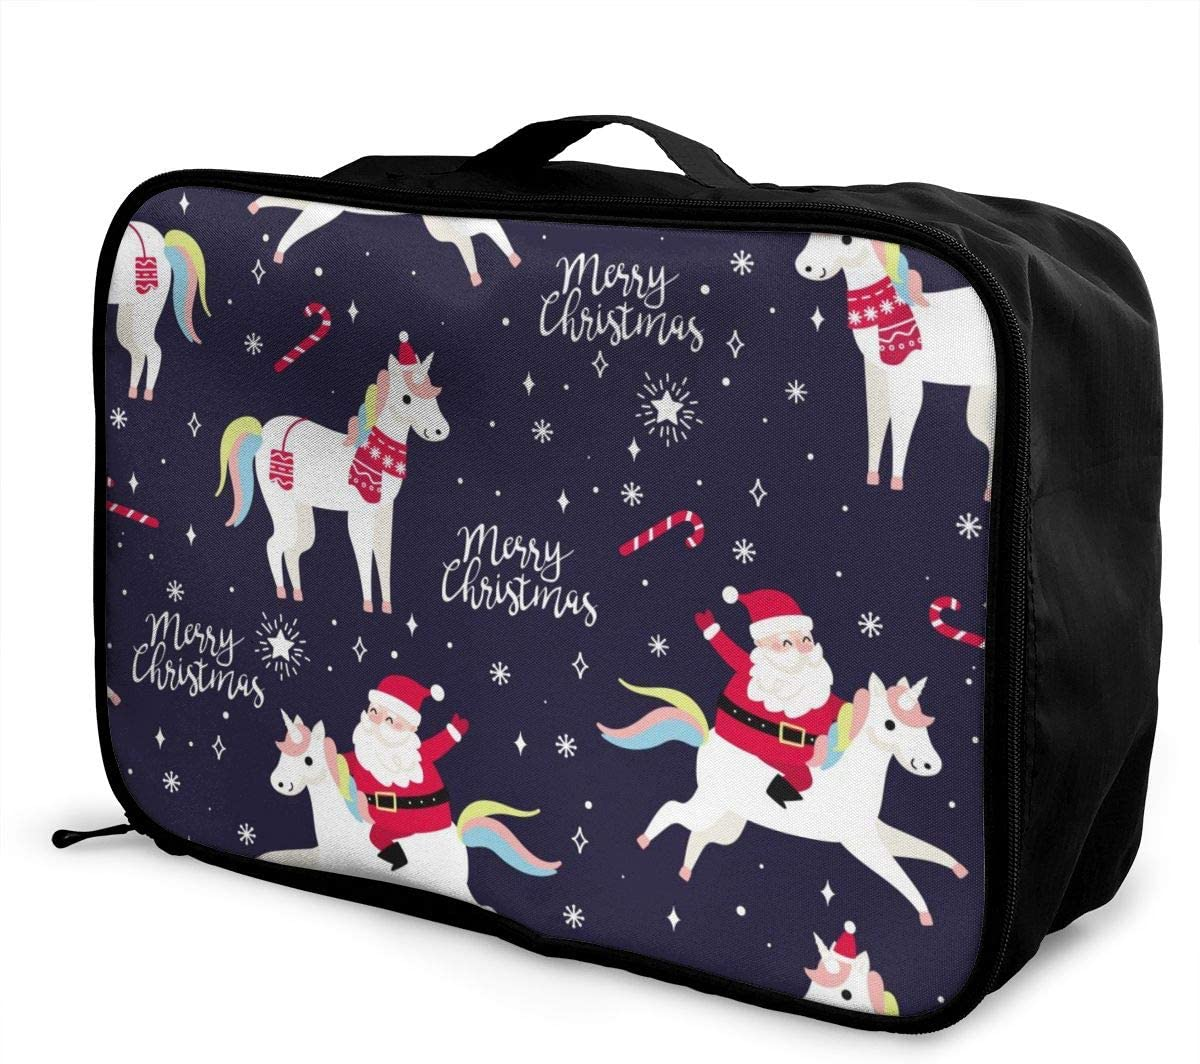 Santa Claus Riding Horse Lightweight LargeTravel Storage Luggage Trolley Bag Travel Duffel Bags Carry-On Tote